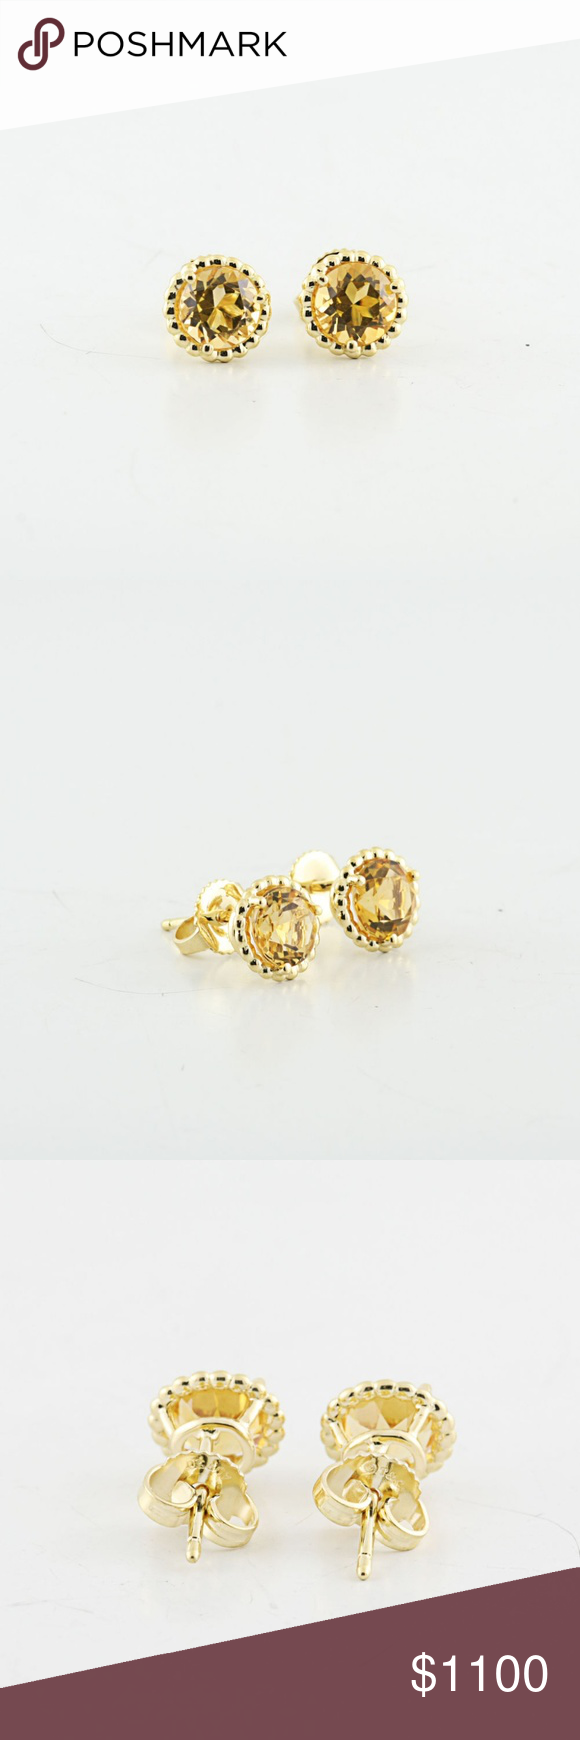 c7ad7bc93 Tiffany & Co 18K Yellow Gold Citrine Earrings Authentic Tiffany & Co 18K  Yellow Gold Citrine Gemstone Earring Studs. Shipped with USPS First Class  Package.